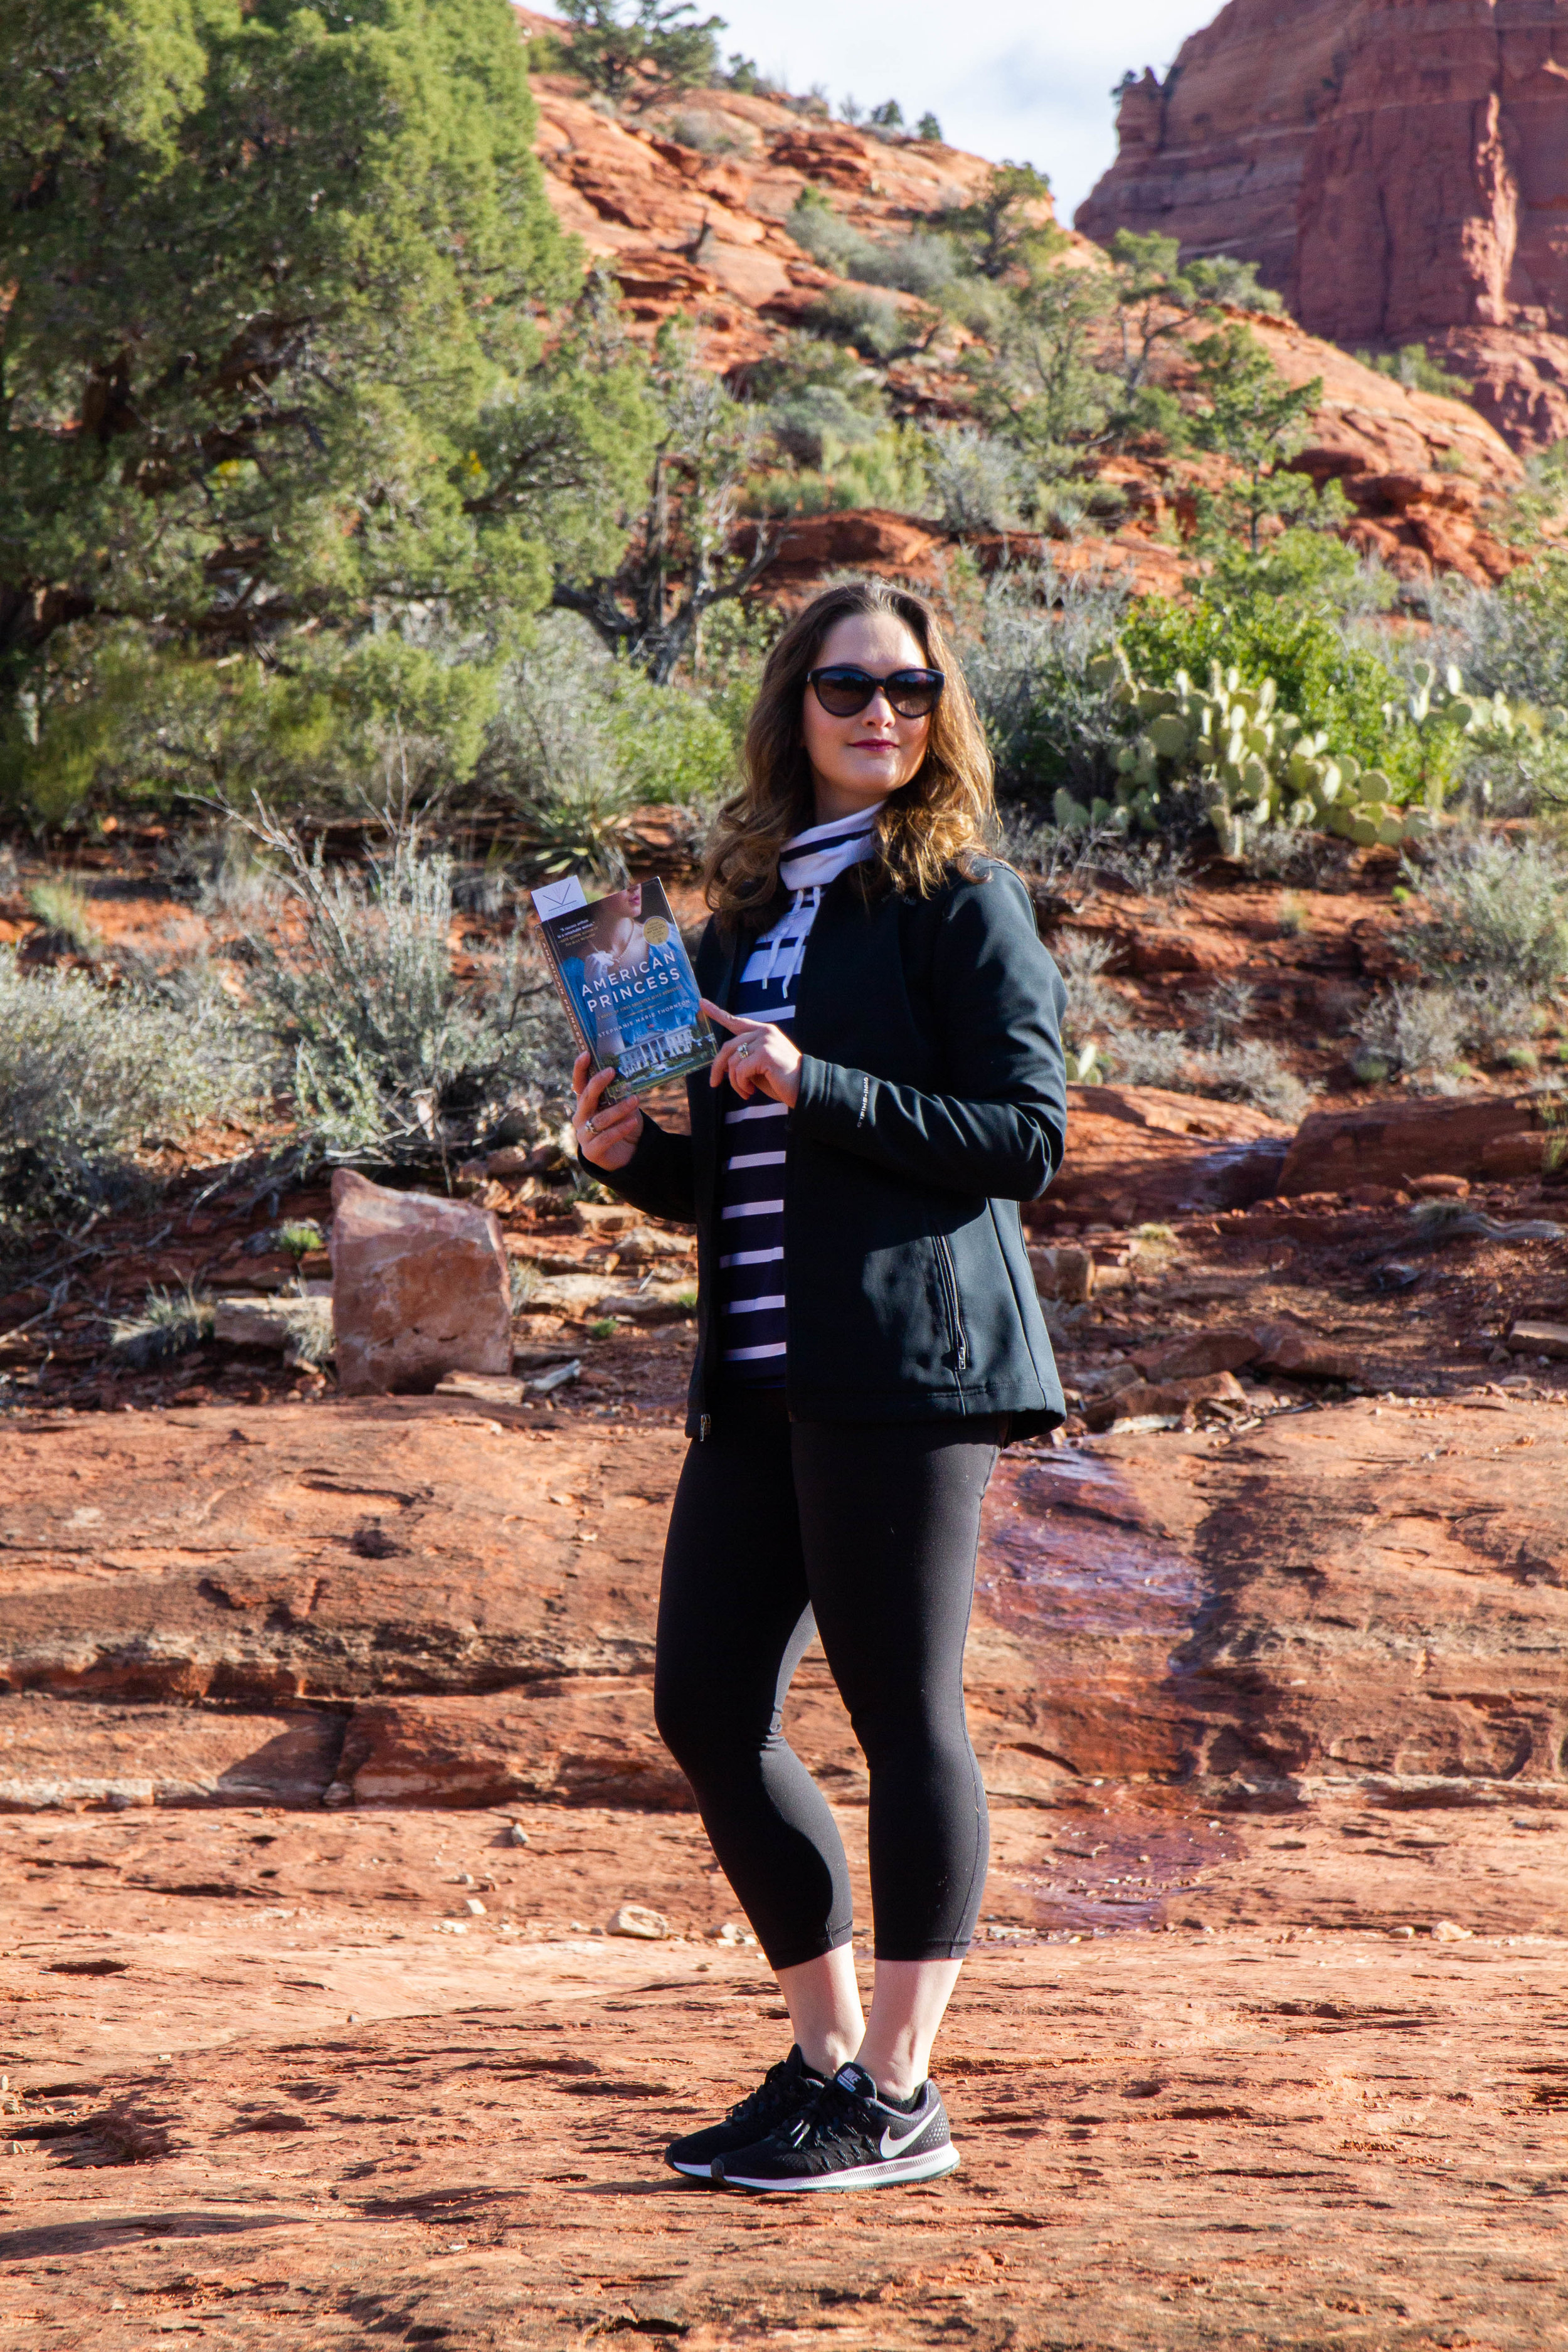 Reading American Princess by Stephanie Marie Thornton on the Soldiers Pass Trail to Seven Sacred Pools in Sedona, AZ